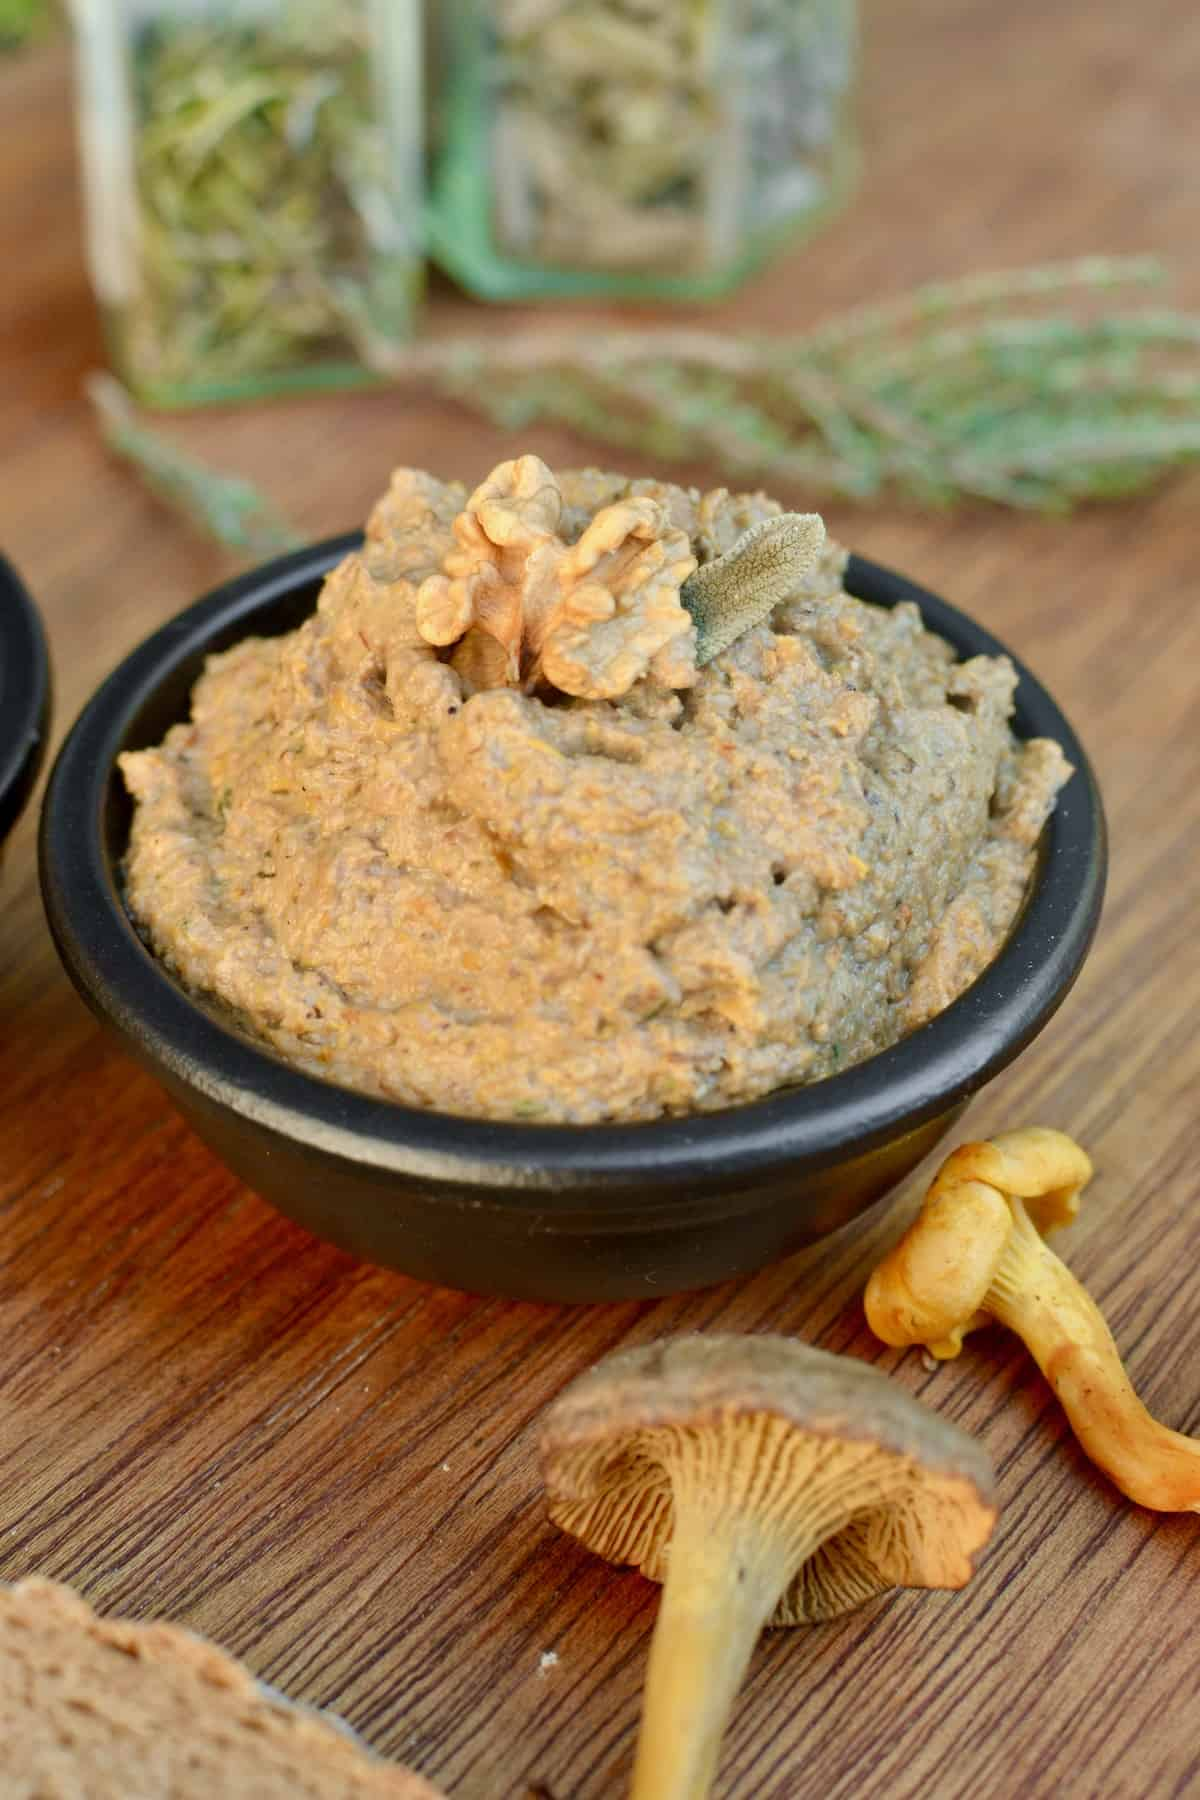 Light brown coloured mushroom pate topped with a walnut and sage leaf.